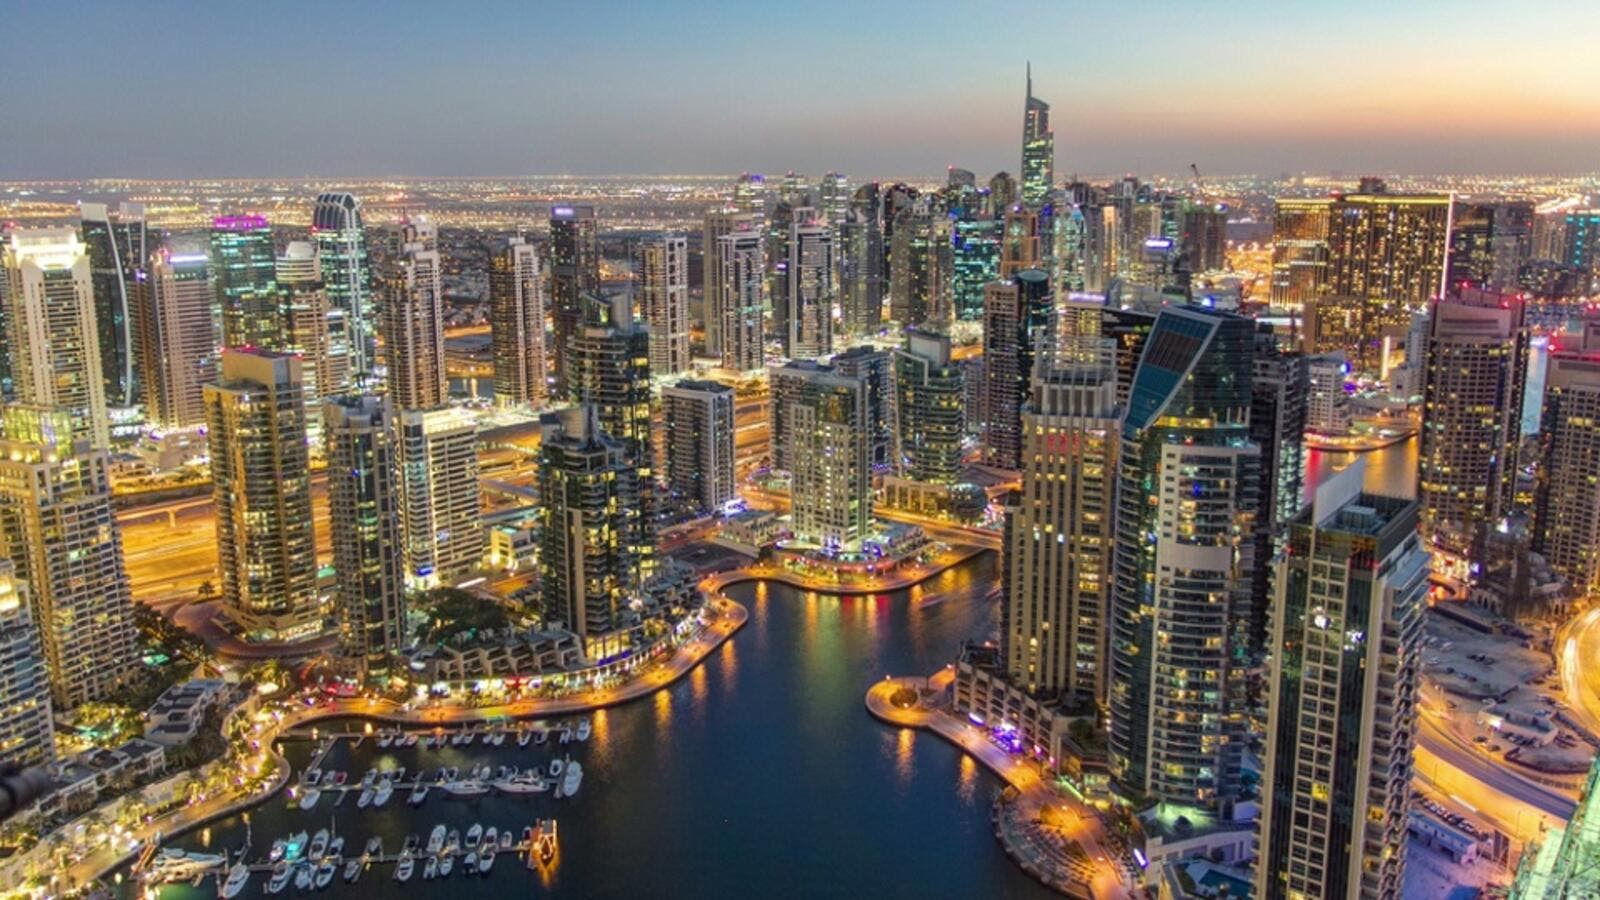 Average rents at the Dubai International Financial Centre were the highest at approximately Dh200 per square foot annually.